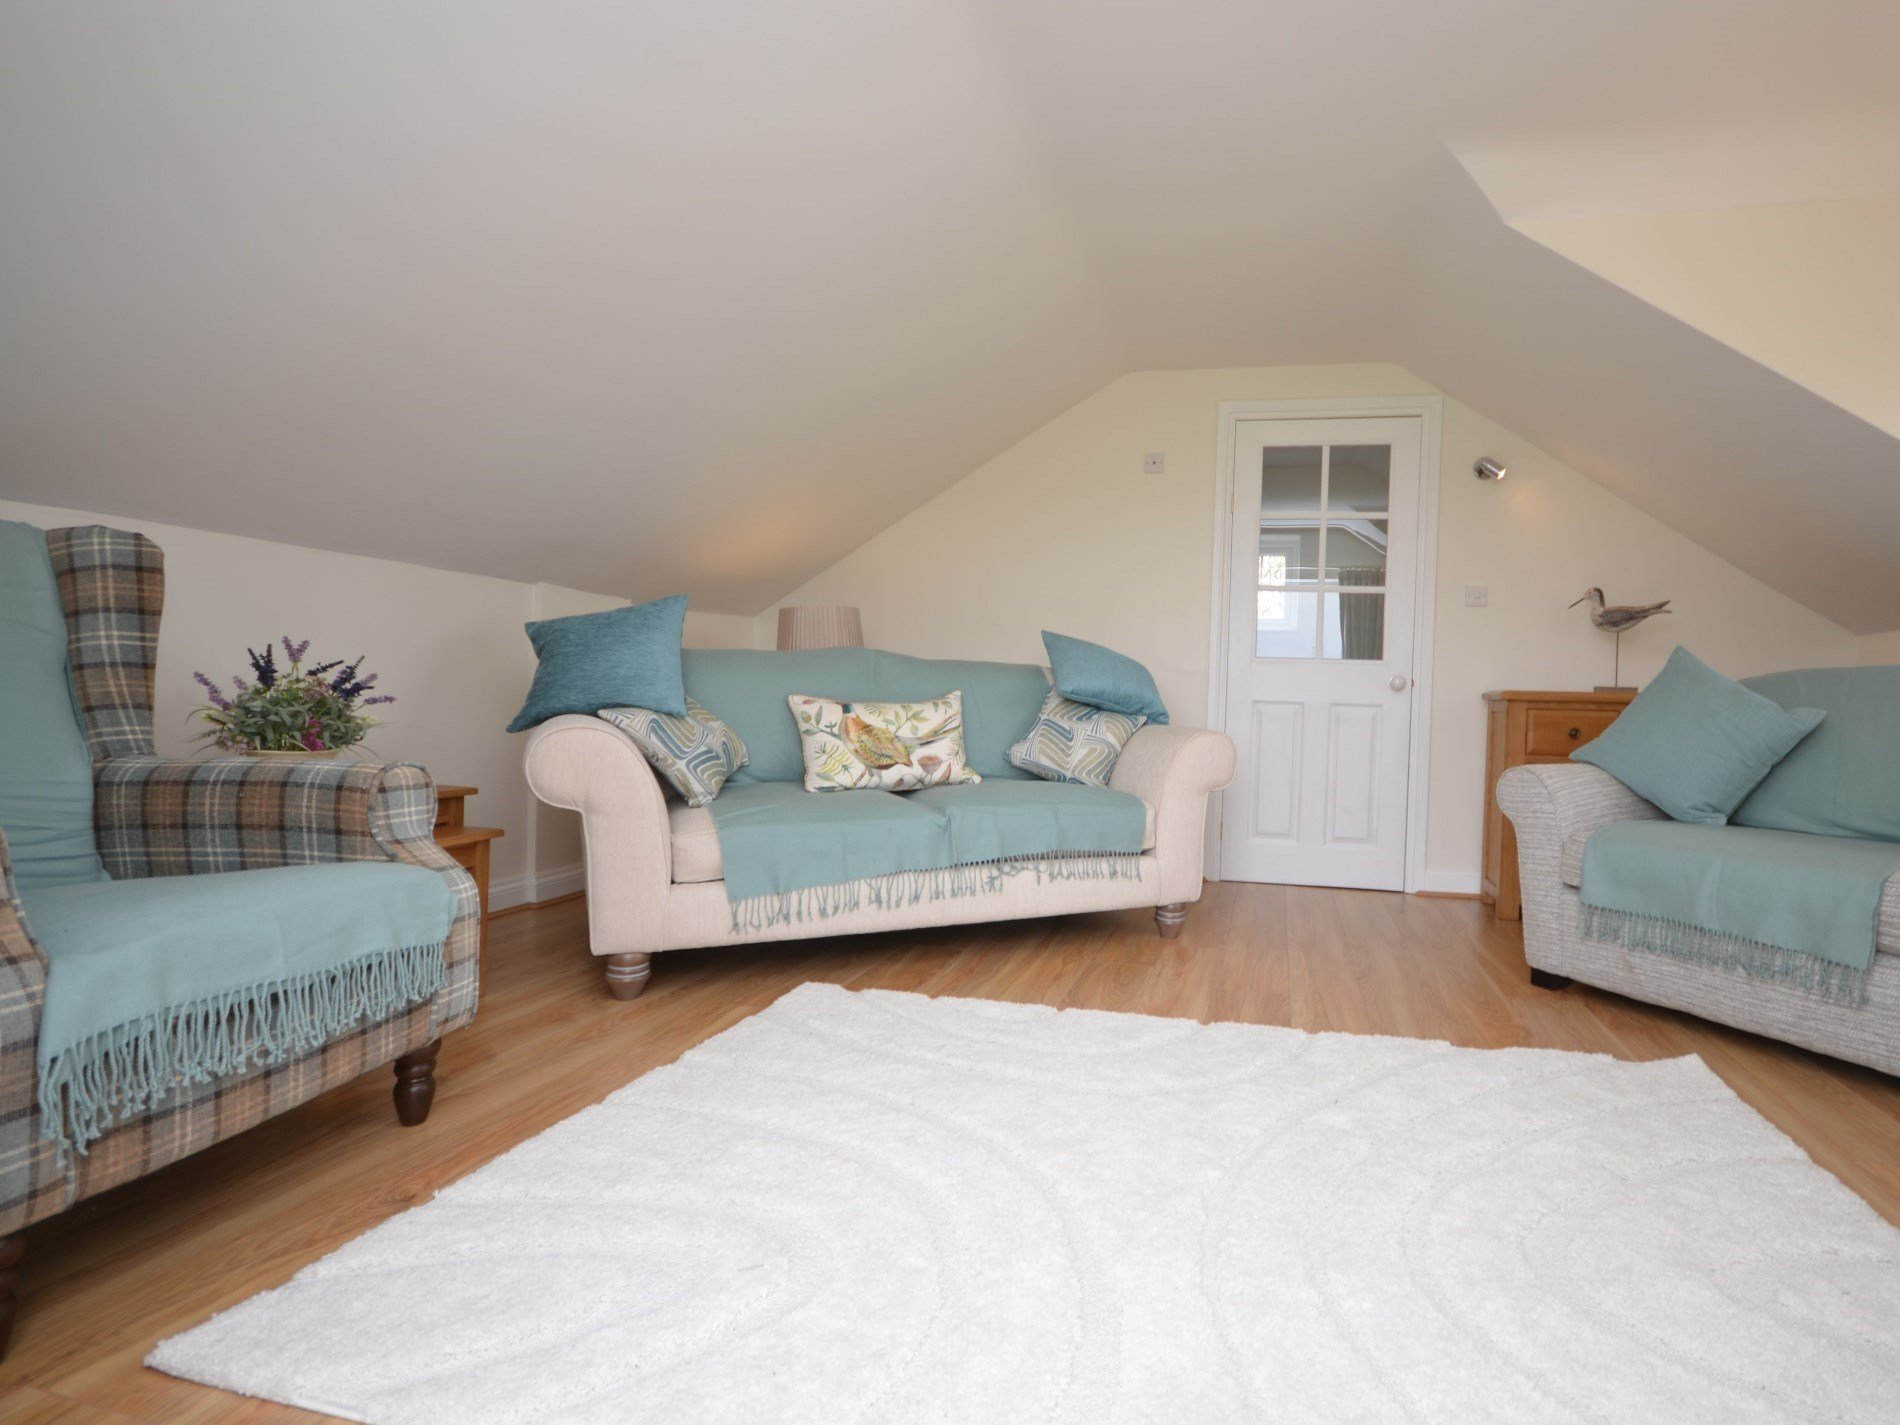 1 Bedroom Cottage in Street, Dorset and Somerset